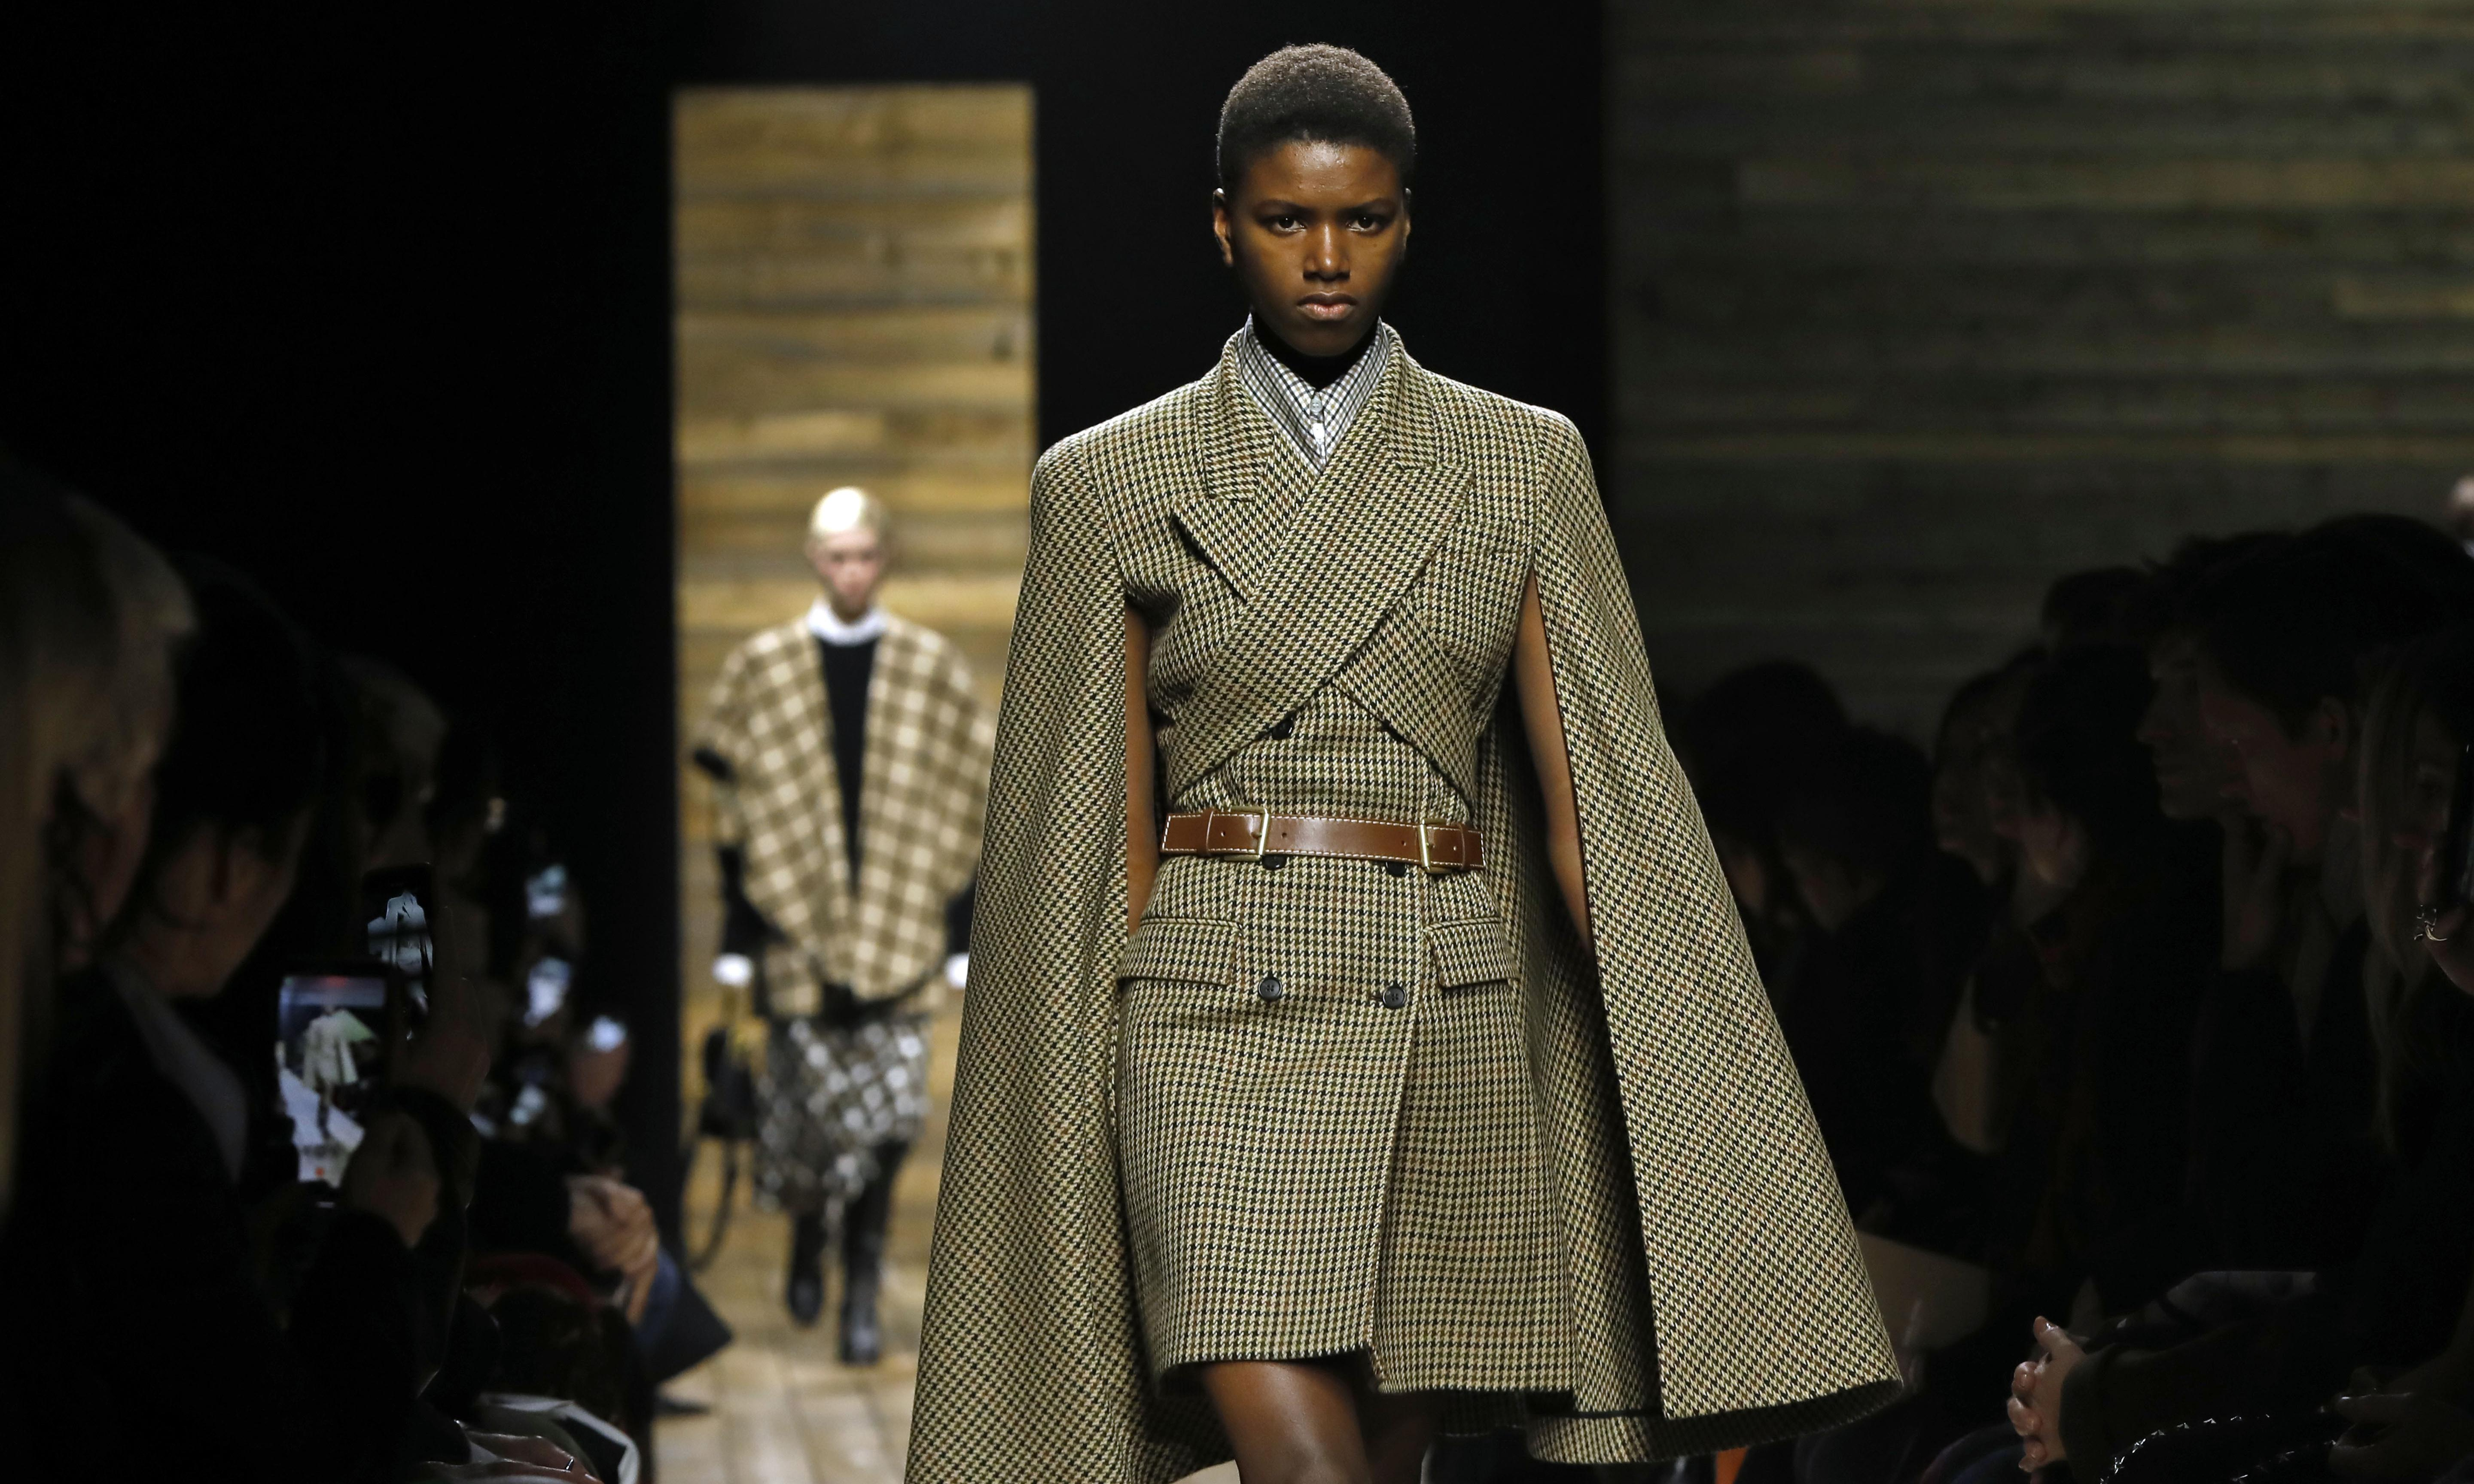 Michael Kors steers cozy towards chic with equestrian collection